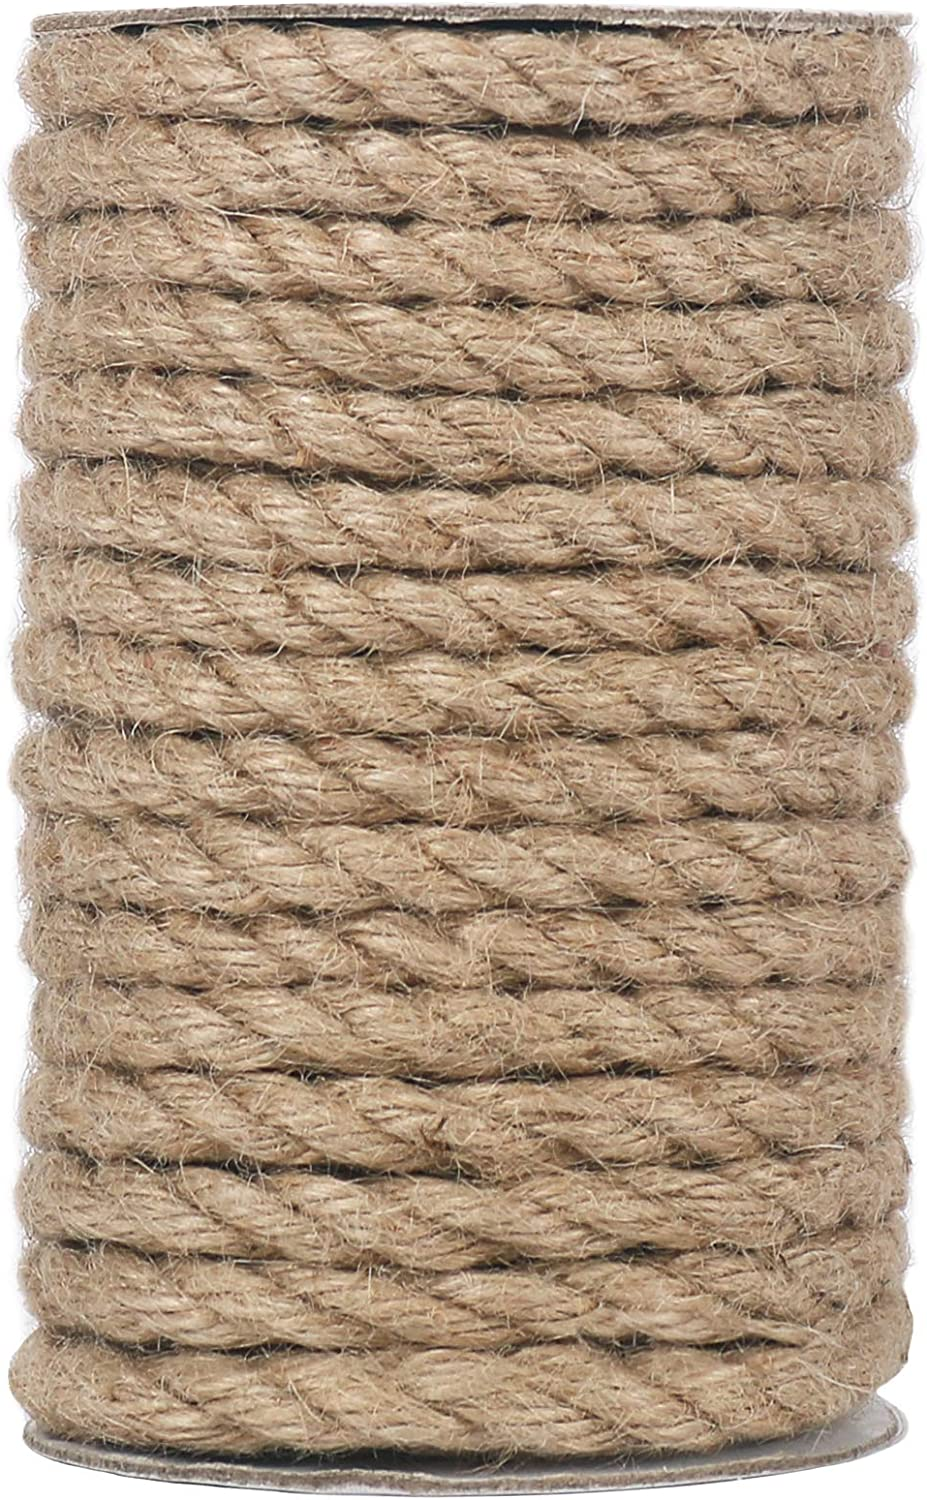 Vivifying 50 Max 85% OFF Feet 8mm Jute Rope for Heavy Cr Twine Natural Duty Super beauty product restock quality top